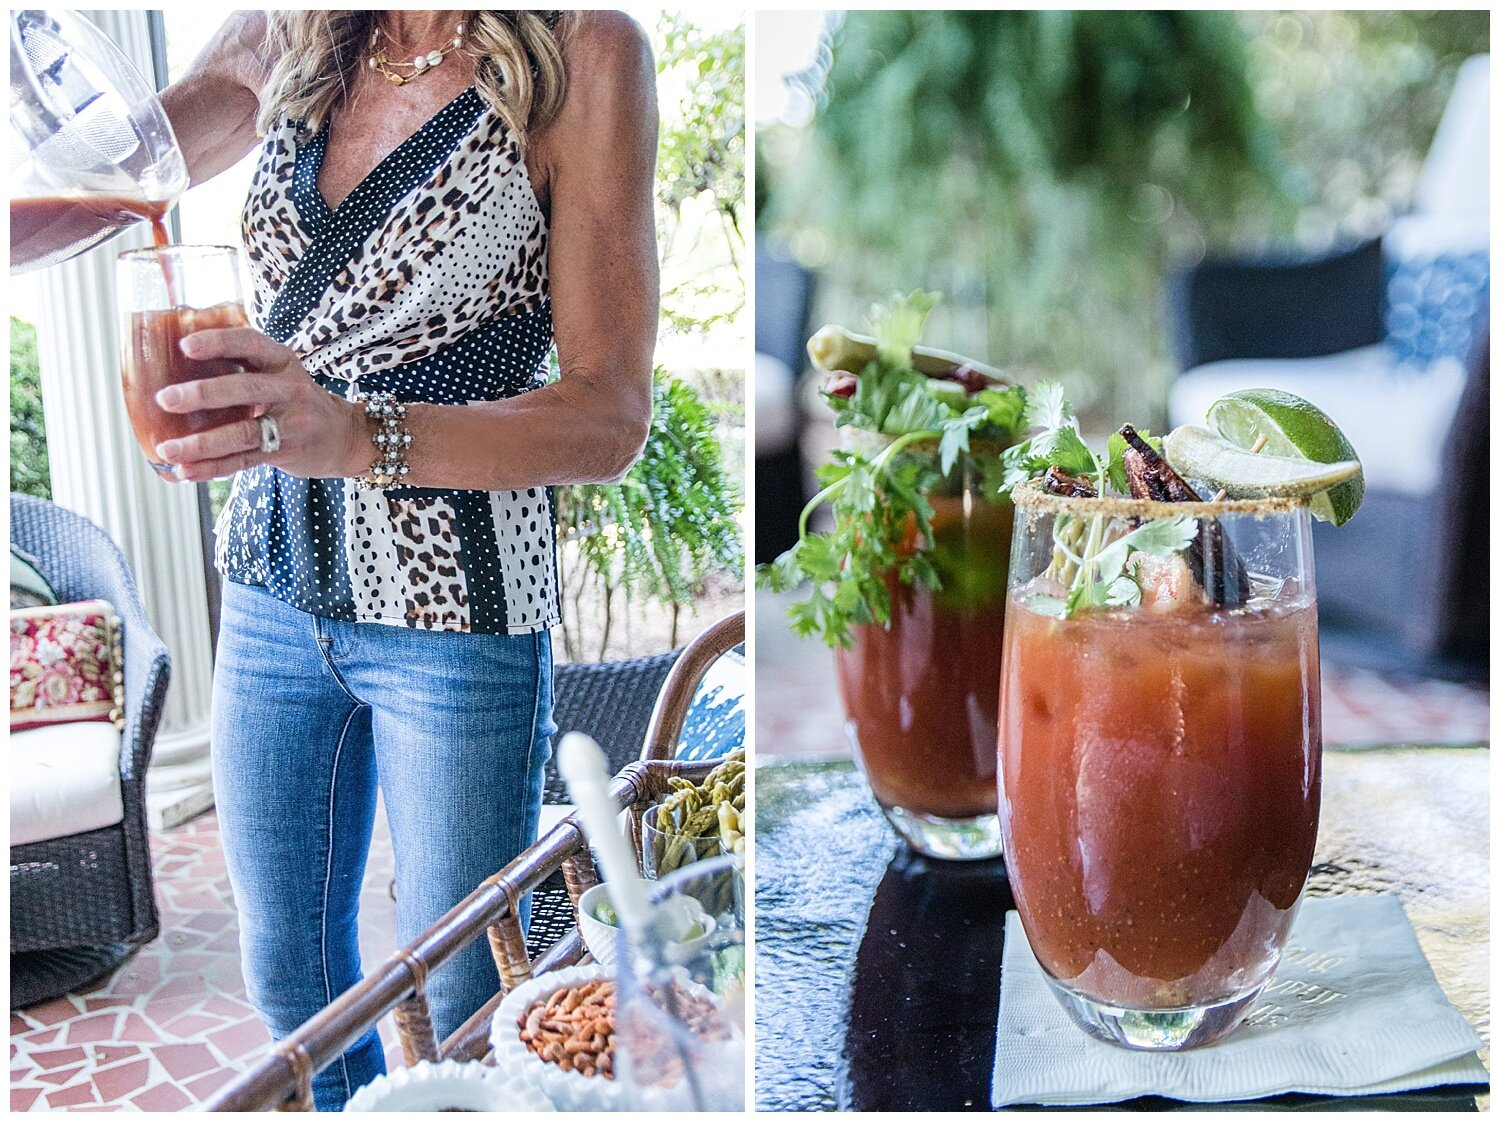 How to Make a Bloody Mary Bar - Crazy Blonde Life